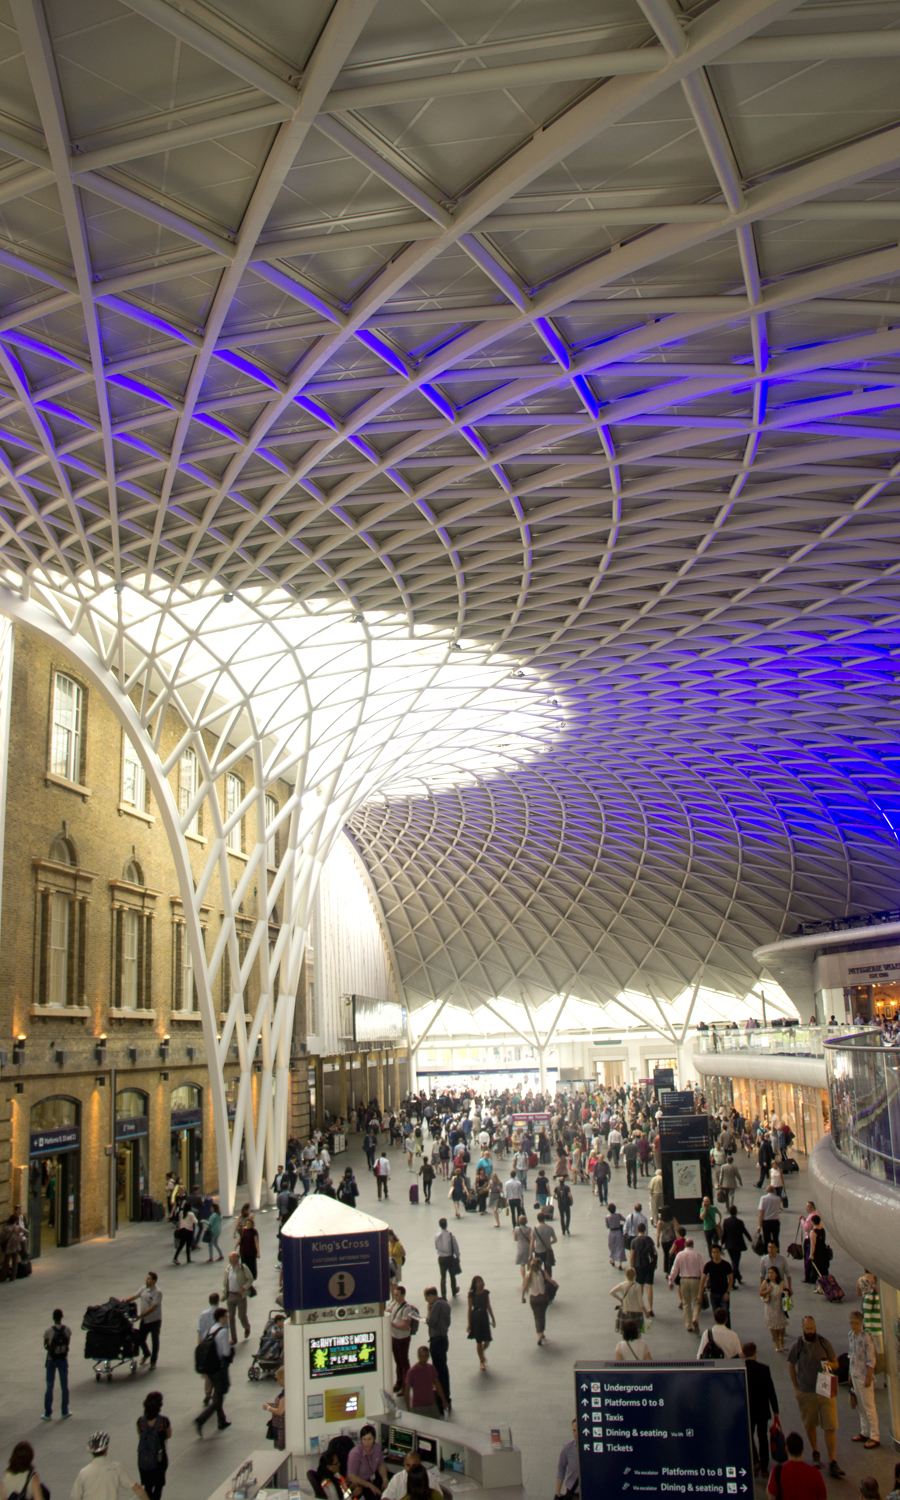 2014-kings-cross-station-london-uk-1